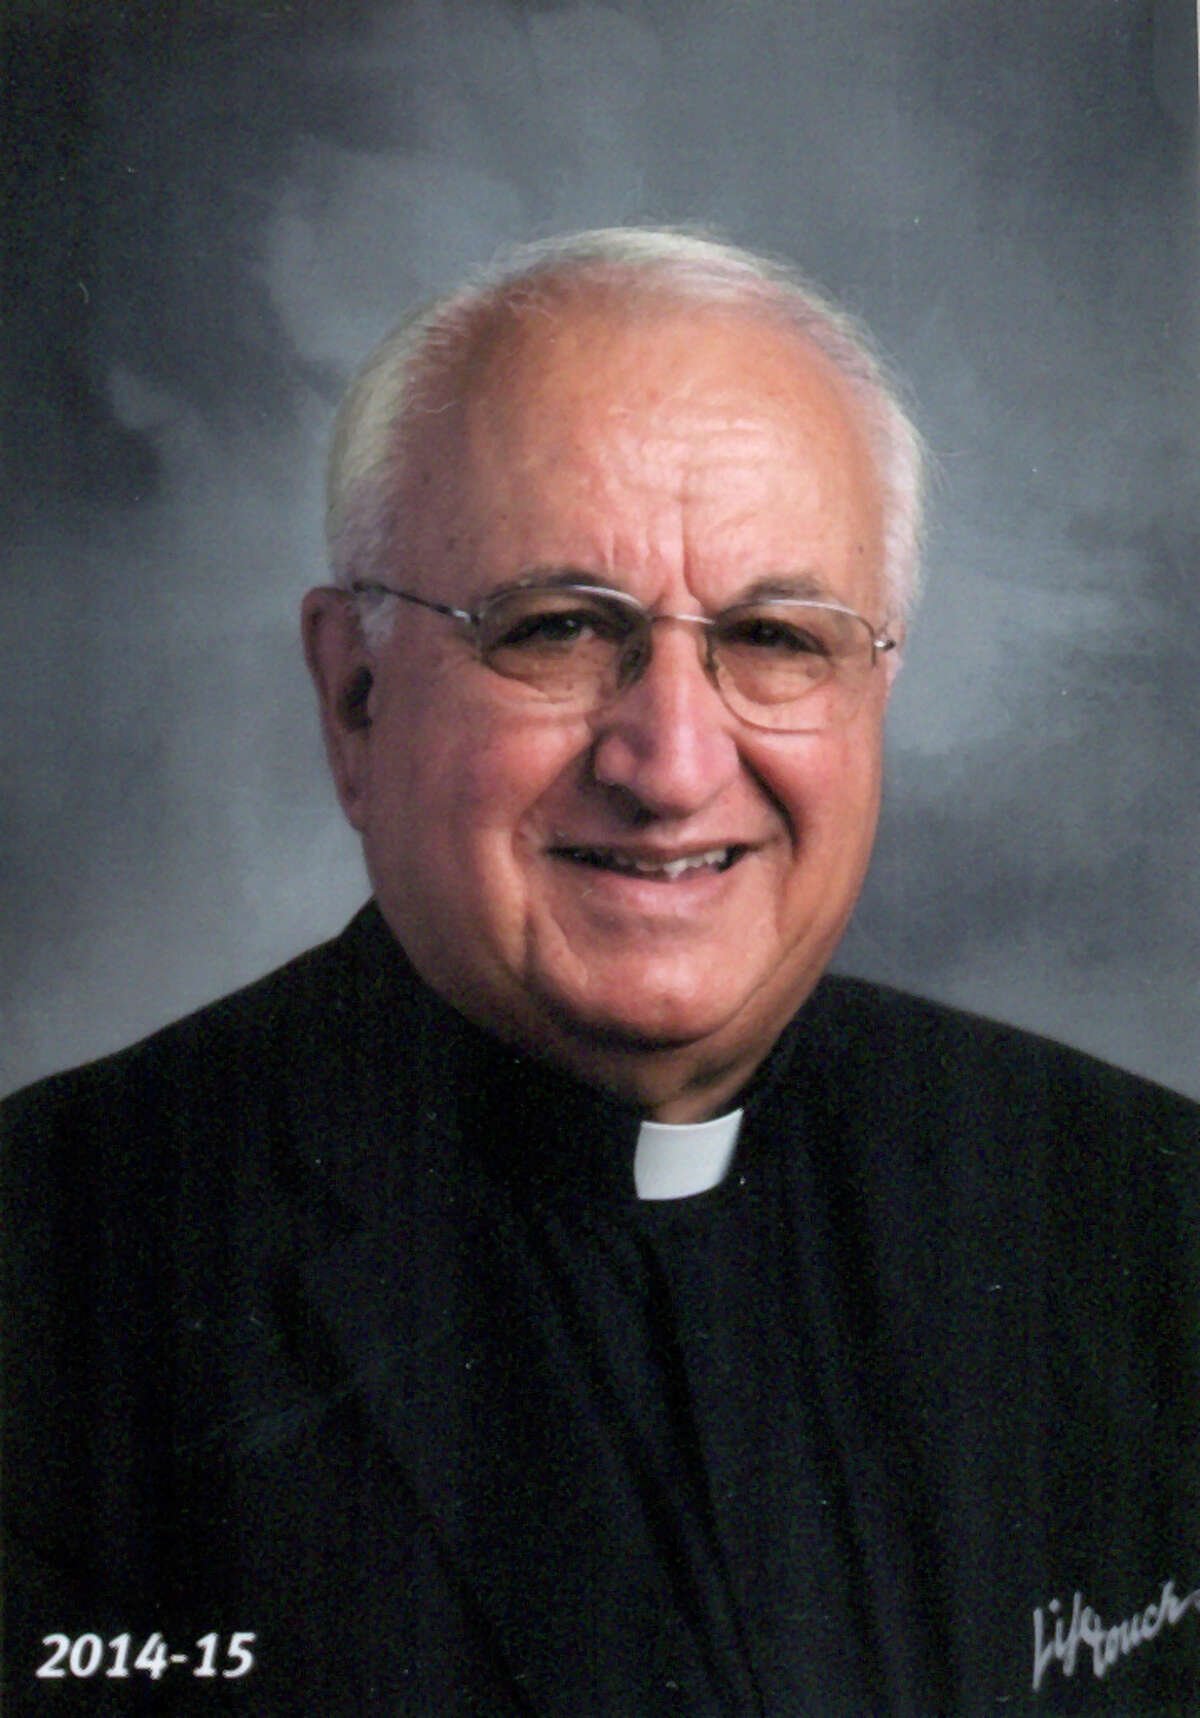 Rev. Michael Farano, a long-time priest and heavily-involved community member in the Albany area, died Wednesday at the age of 78.